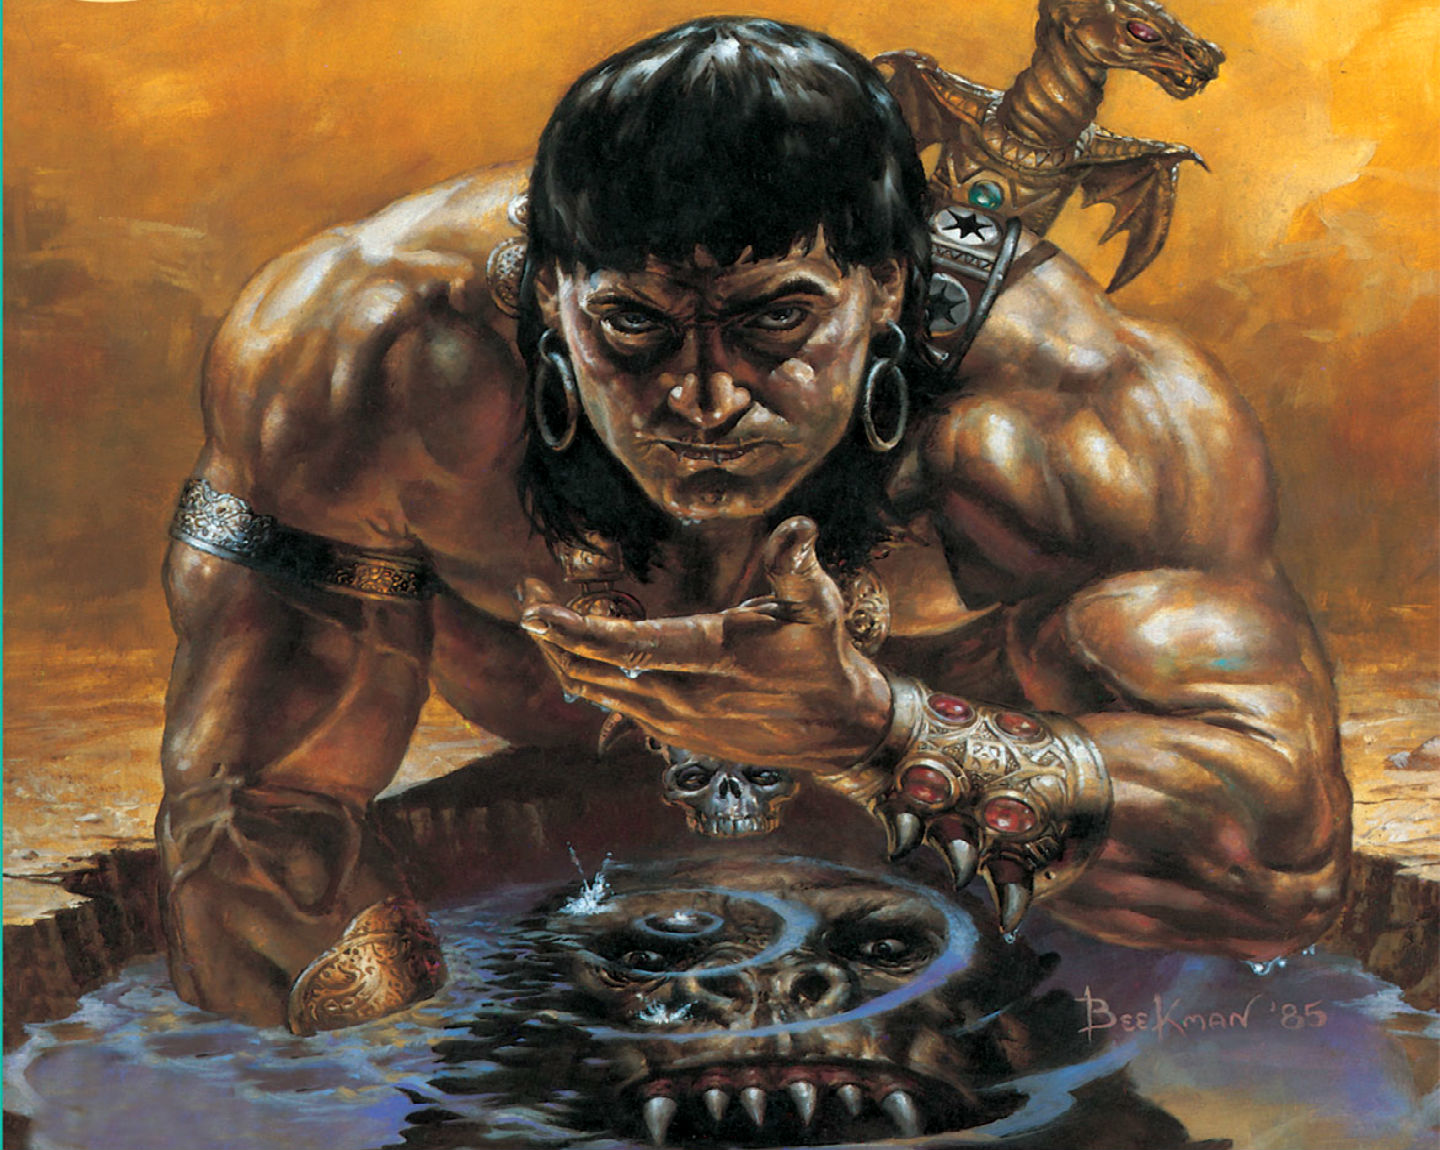 CONAN THE BARBARIAN l wallpaper | 1440x1150 | 140192 ...